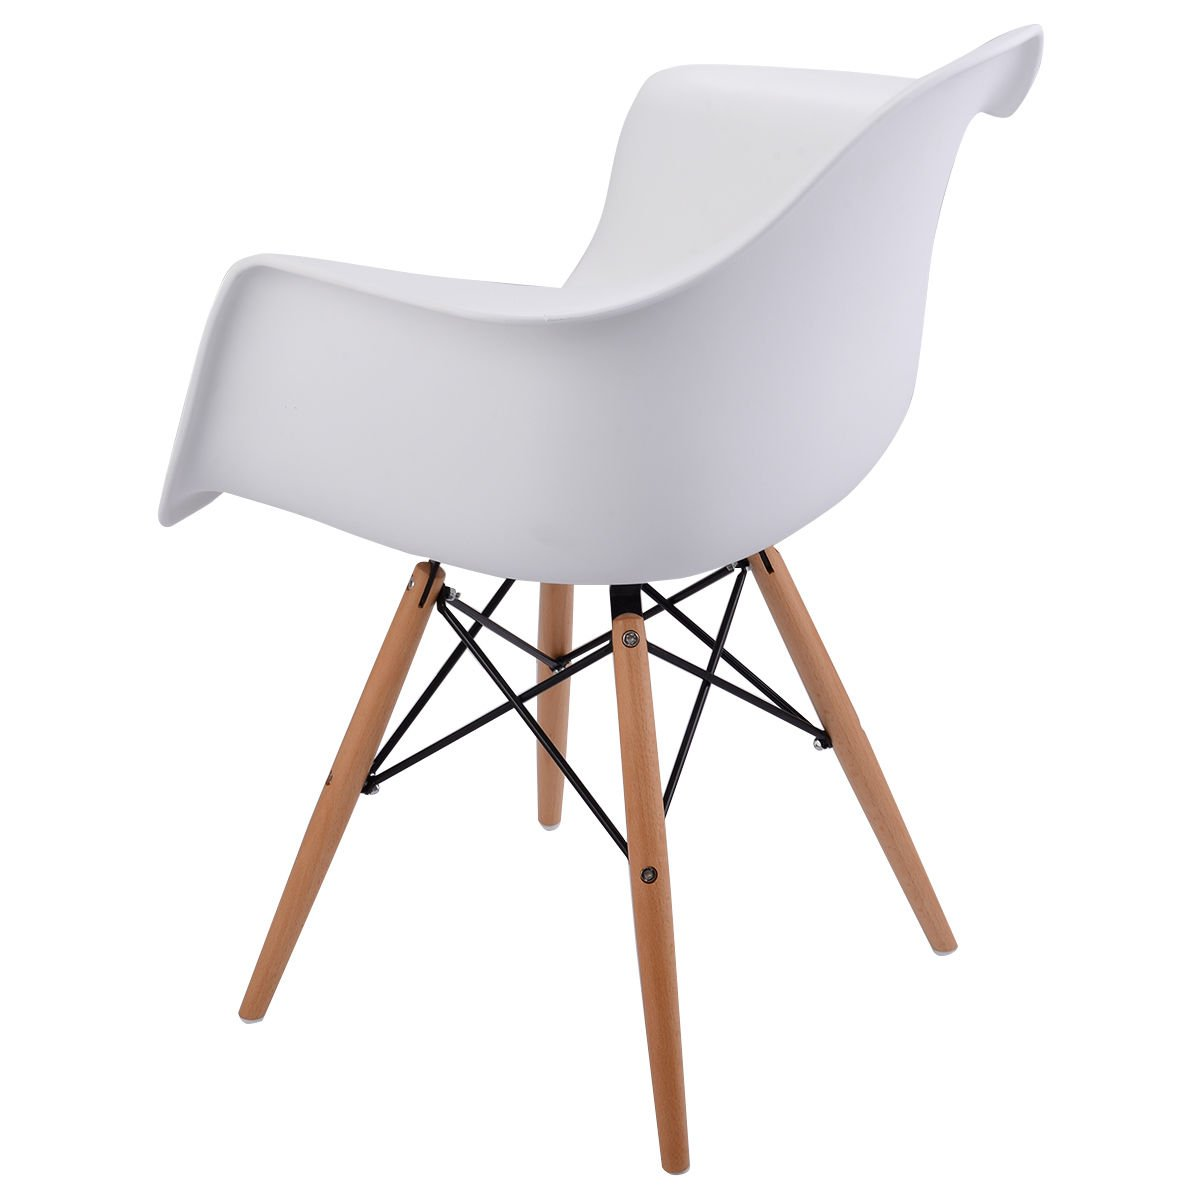 Giantex 1 PC Mid Century Modern Molded Plastic Style Dining Arm Chair Wood Legs by Giantex (Image #3)